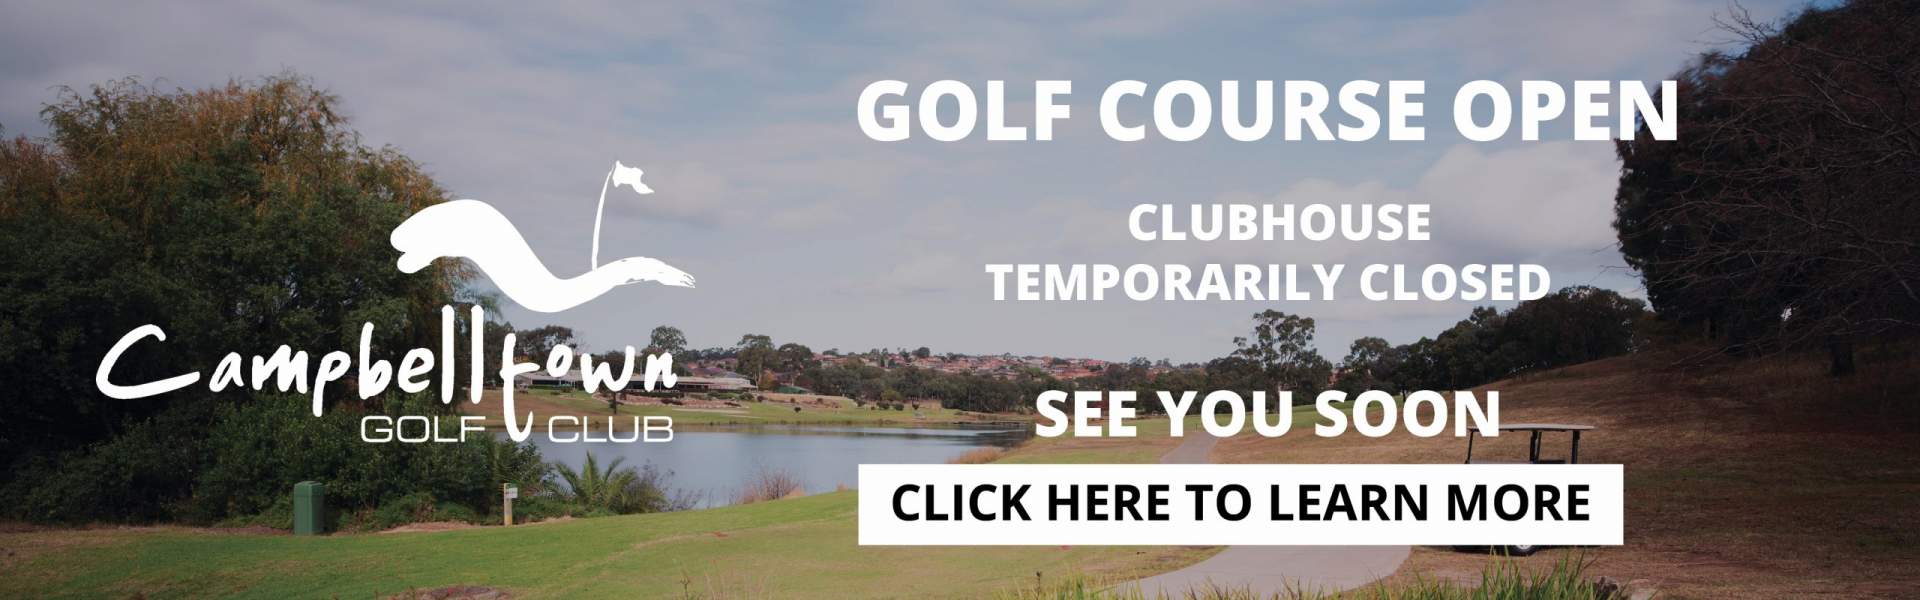 Clubhouse closed and course open see you soon home banner